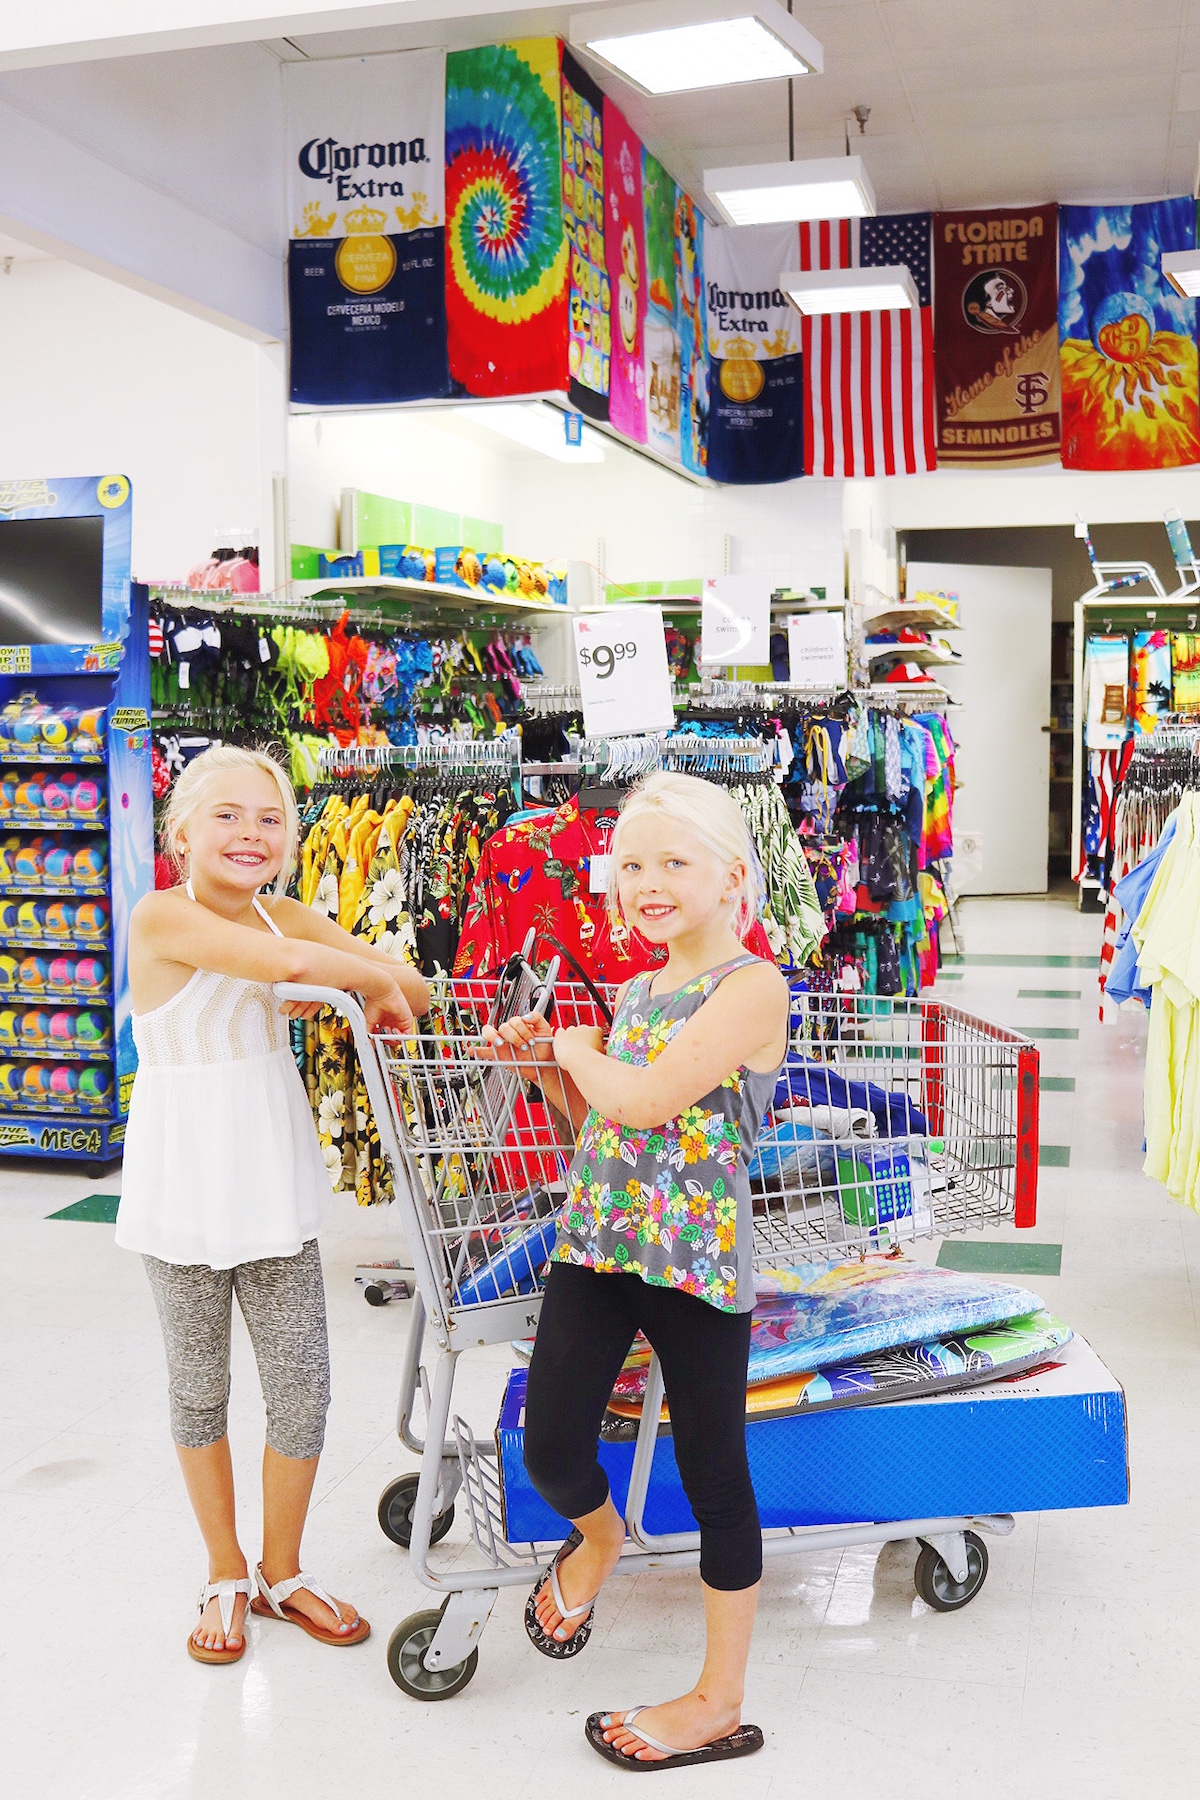 Kids toys, activities and clothing Set imaginations wild with our range of children's toys, clothing and accessories. Our playful collection provides everything kids need to create, learn and play.